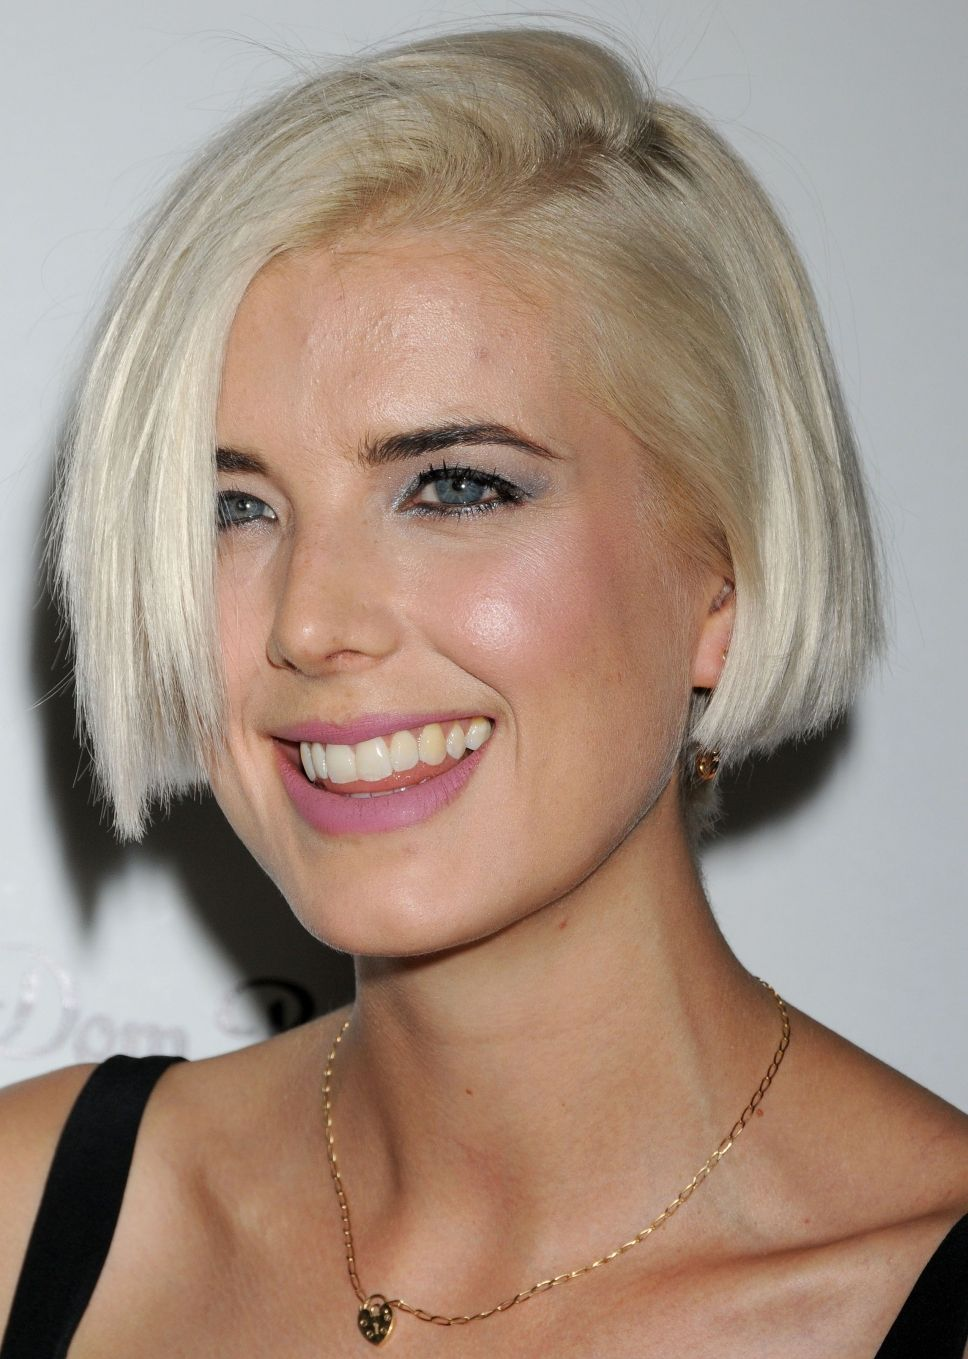 Heroine haircut images british model agyness deyn  inspiration for the heroine of a way